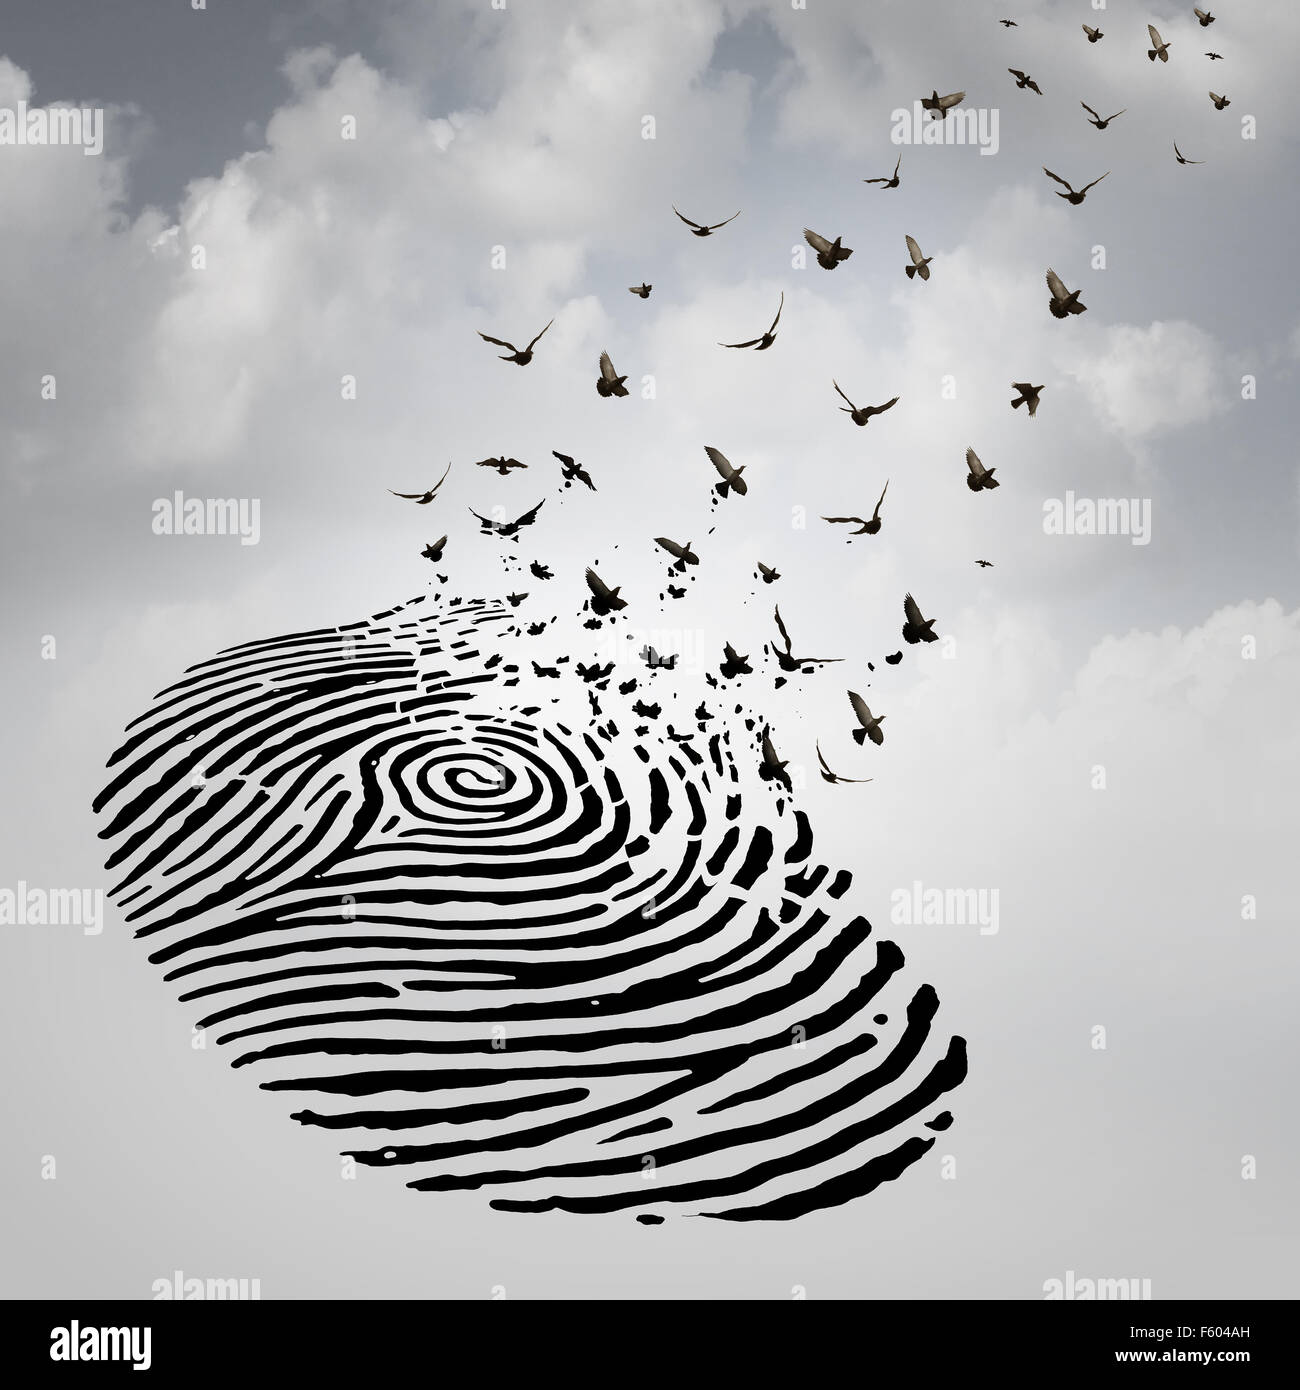 Identity freedom concept as a fingerprint transforming into flying birds as a metaphor for a person losing a psychological - Stock Image